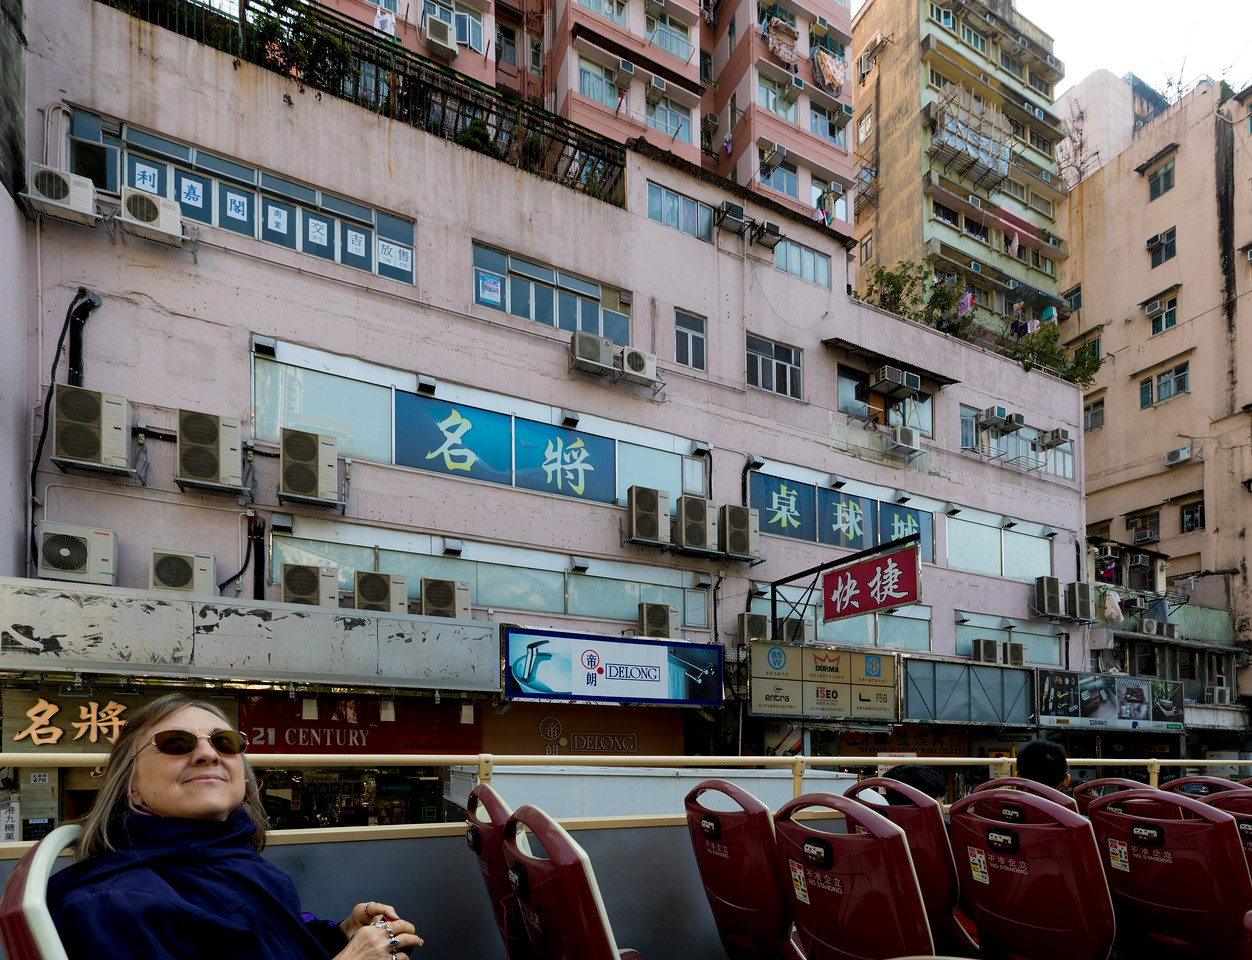 KOWLOON BY BIG BUS